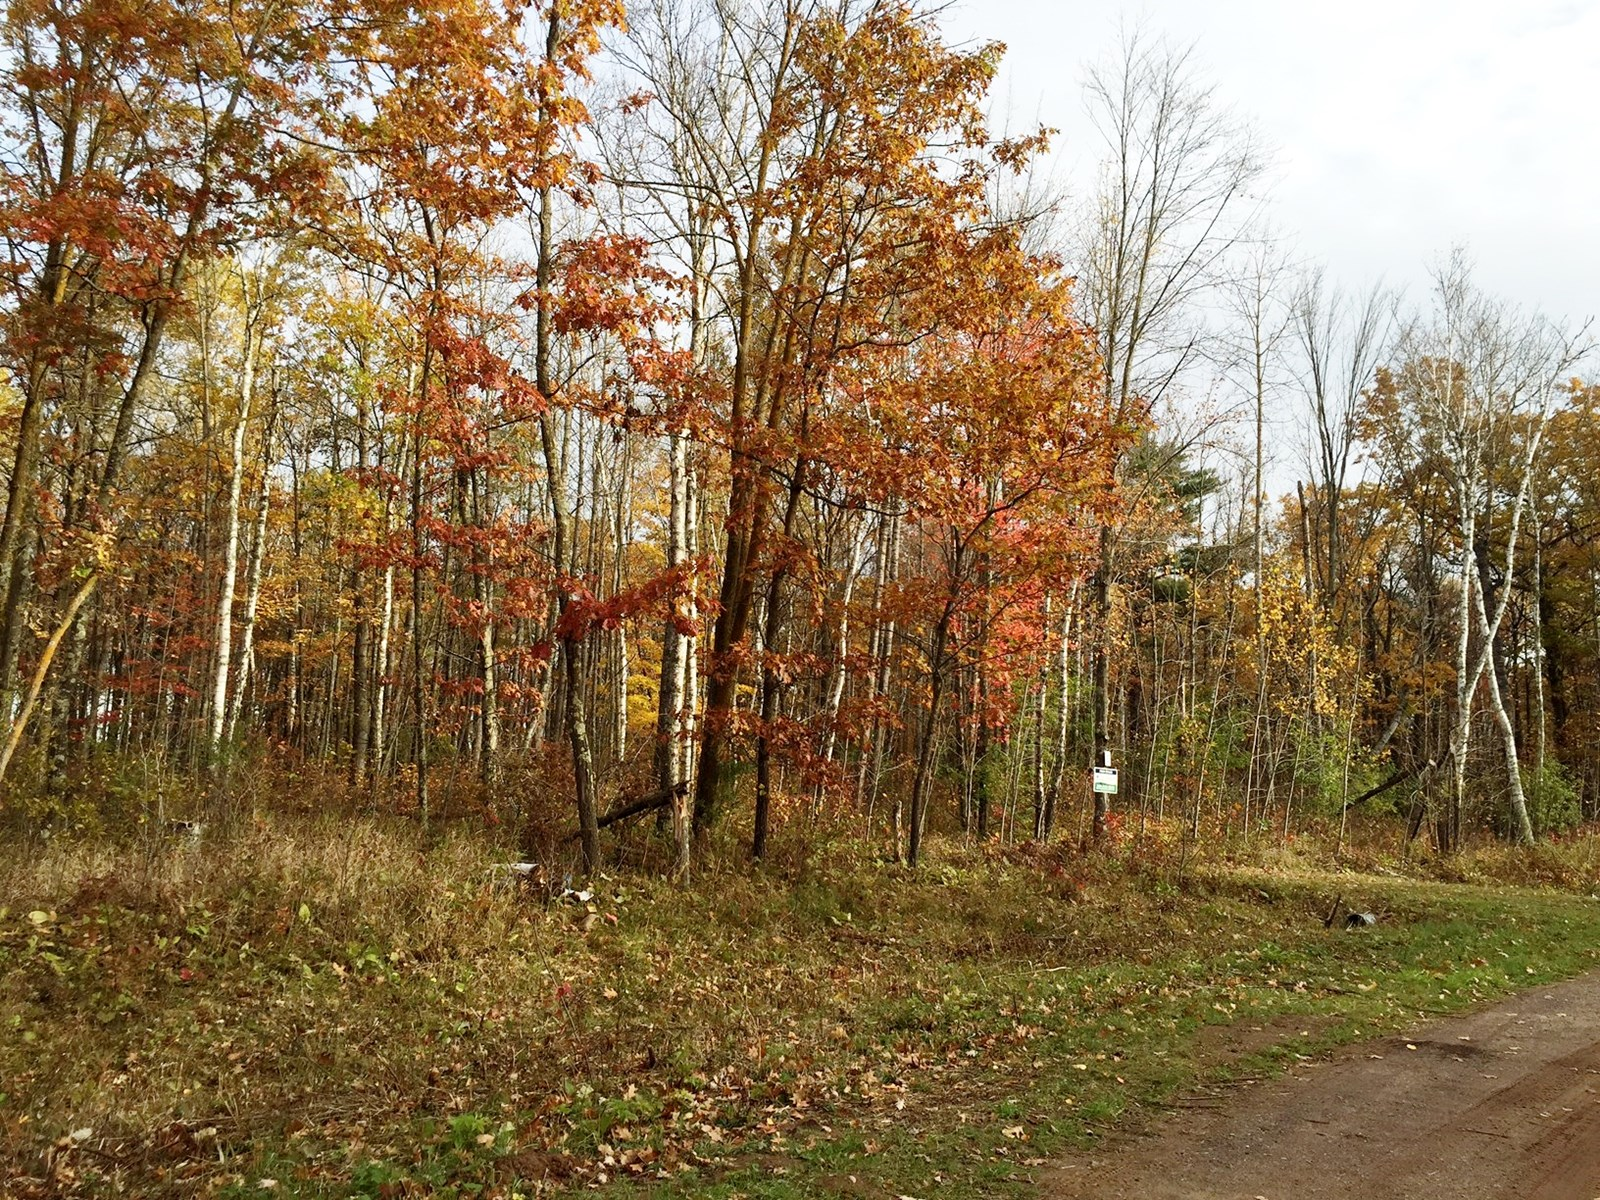 3 Acre Building Lot For Sale in Northern Pine County MN